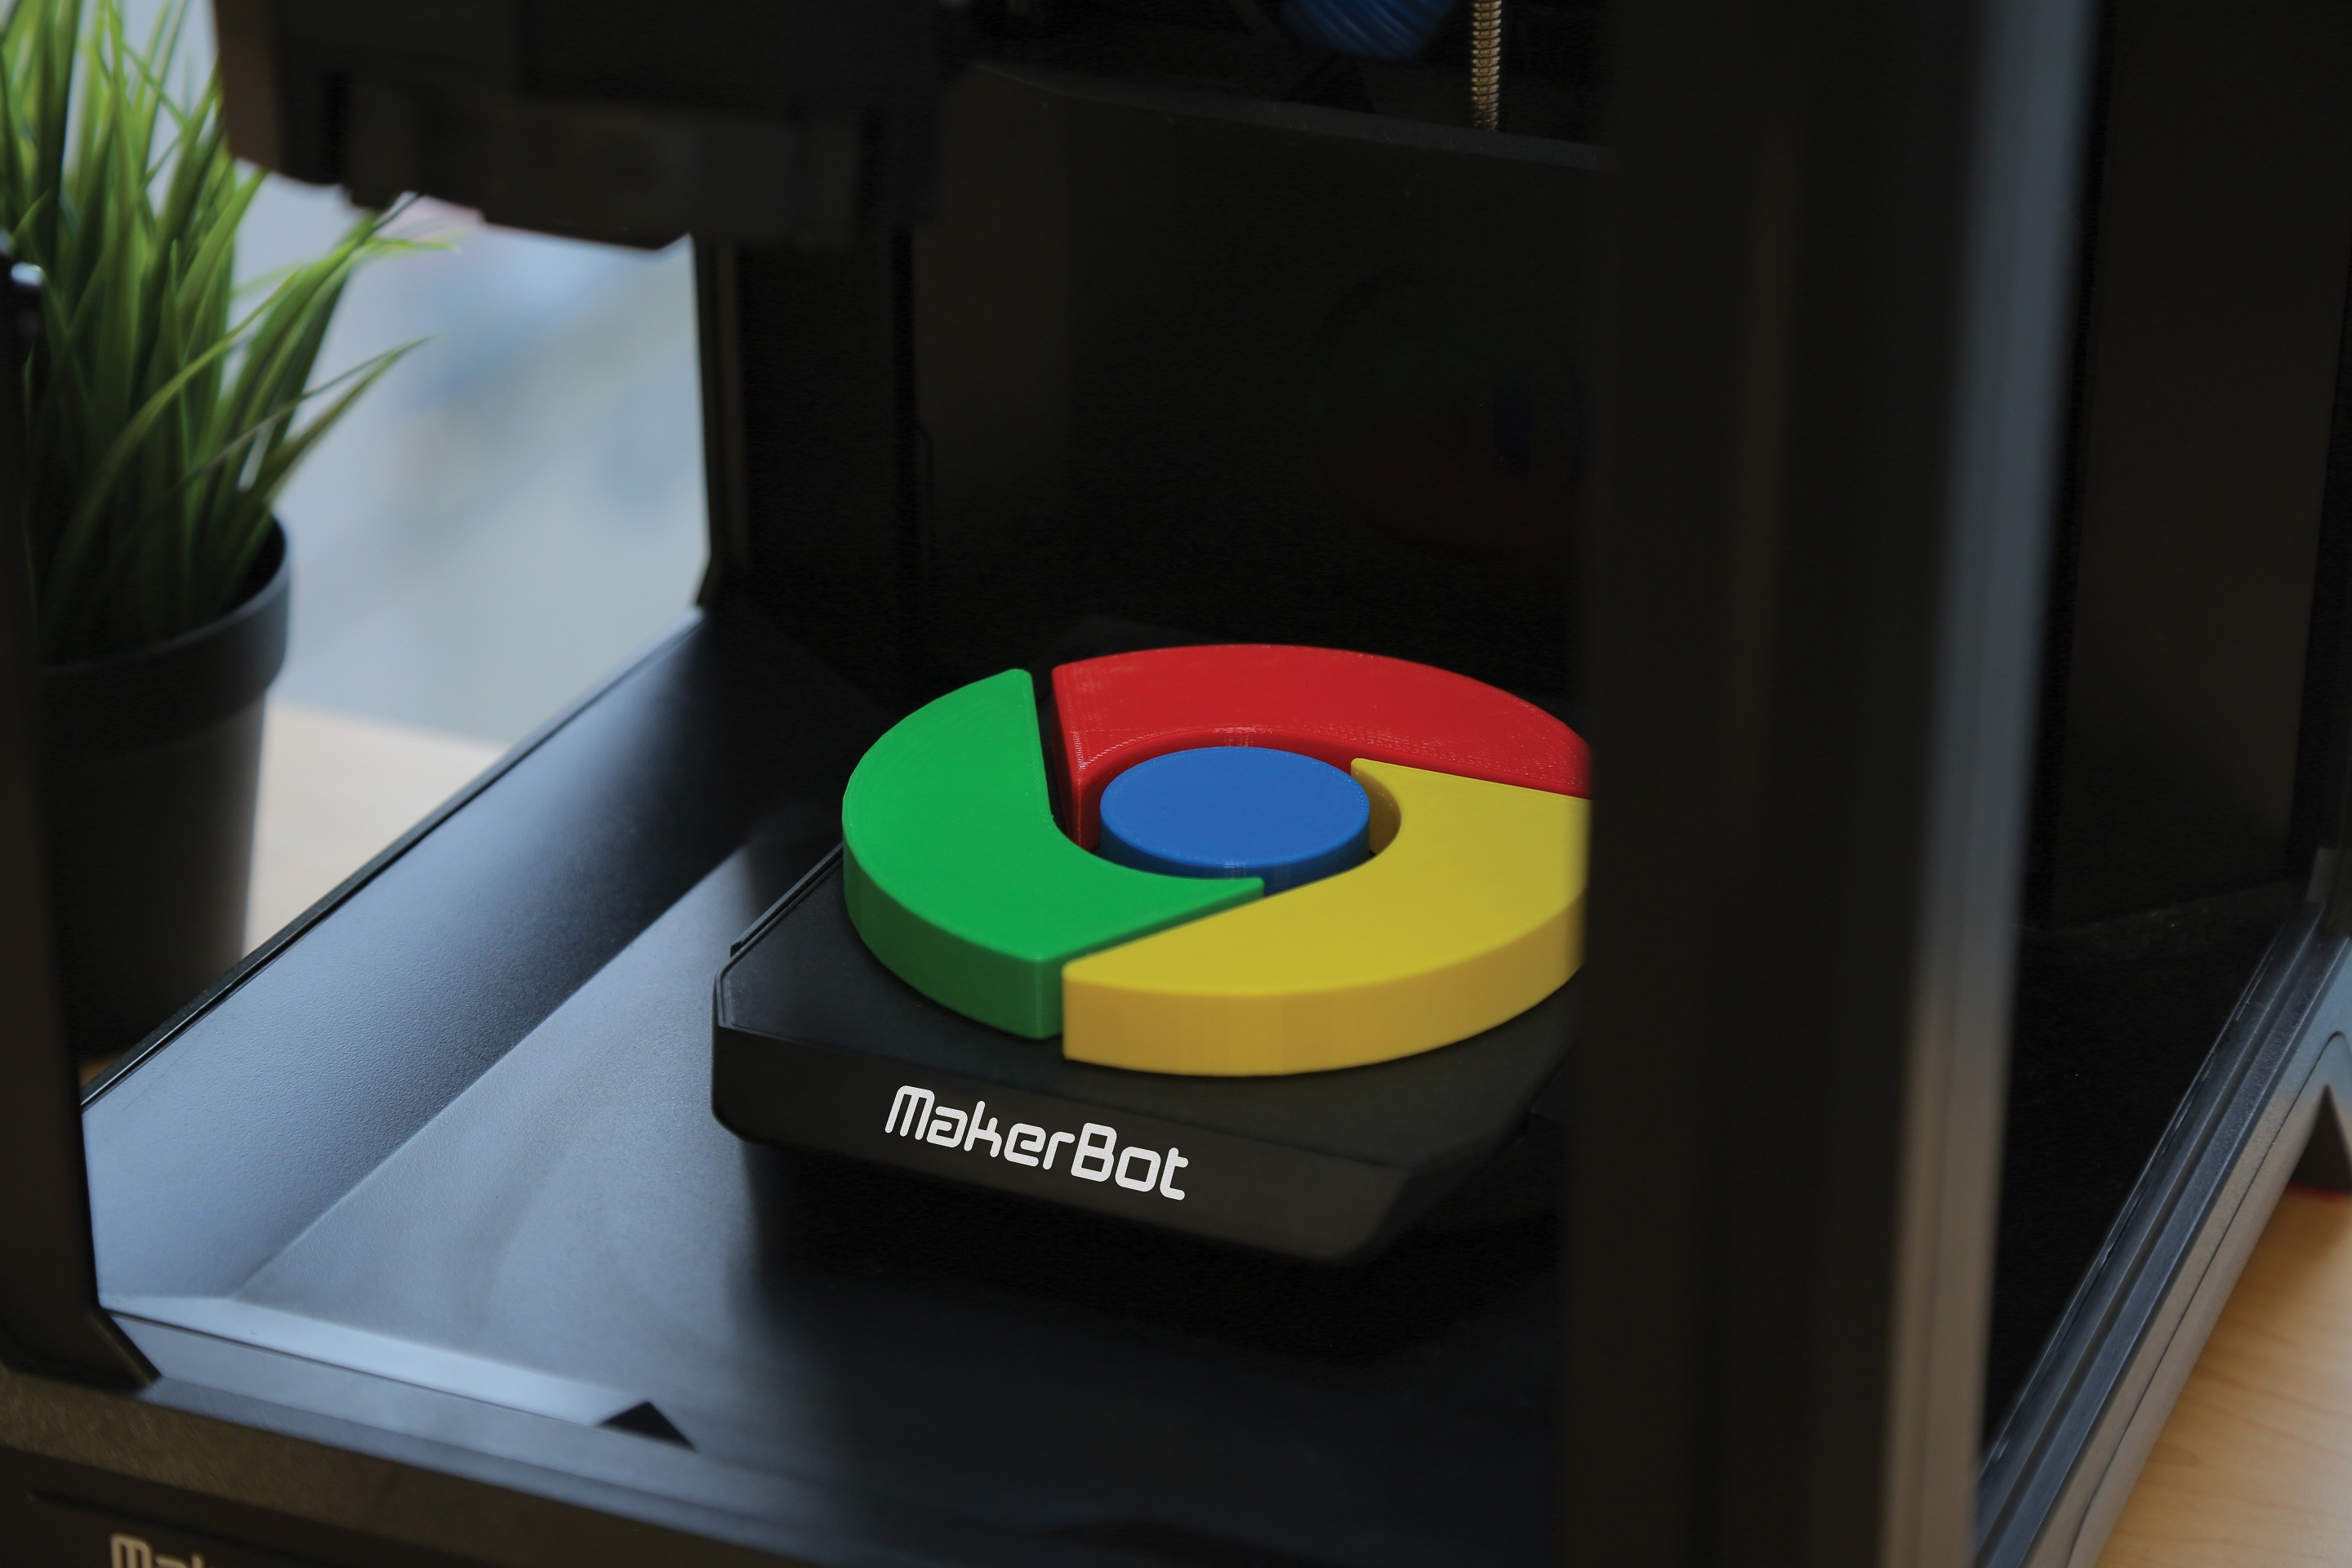 Makerbot projects